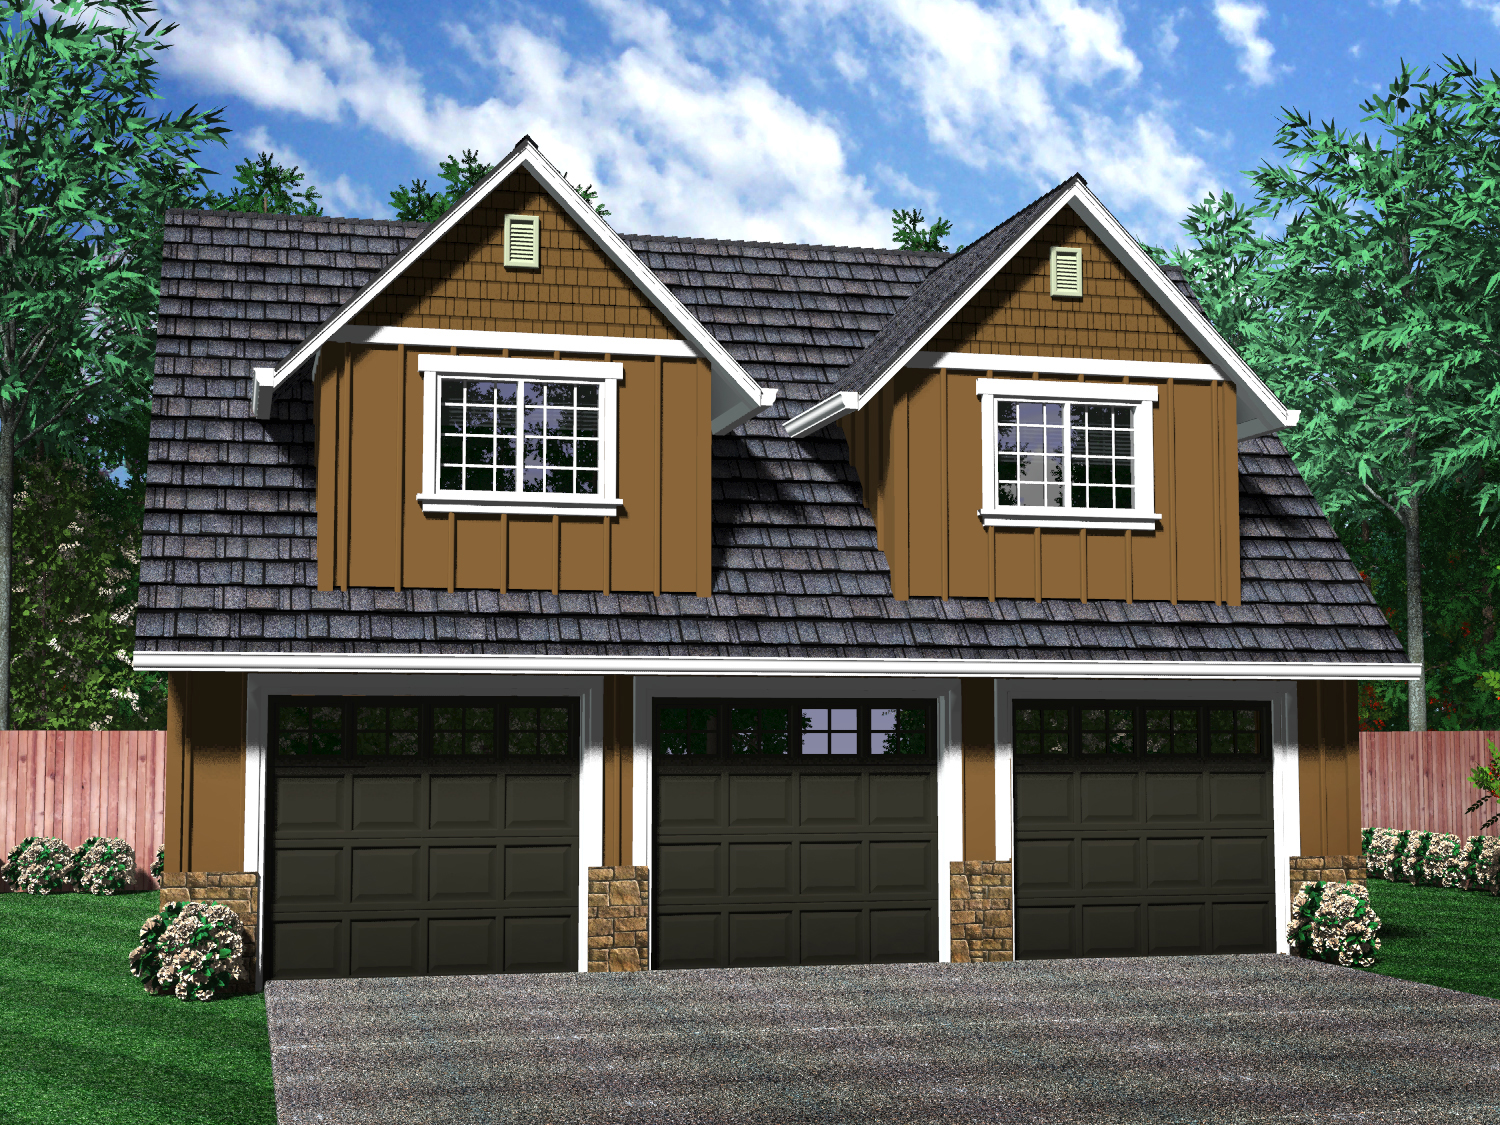 Detached garages for Two car garage with apartment on top